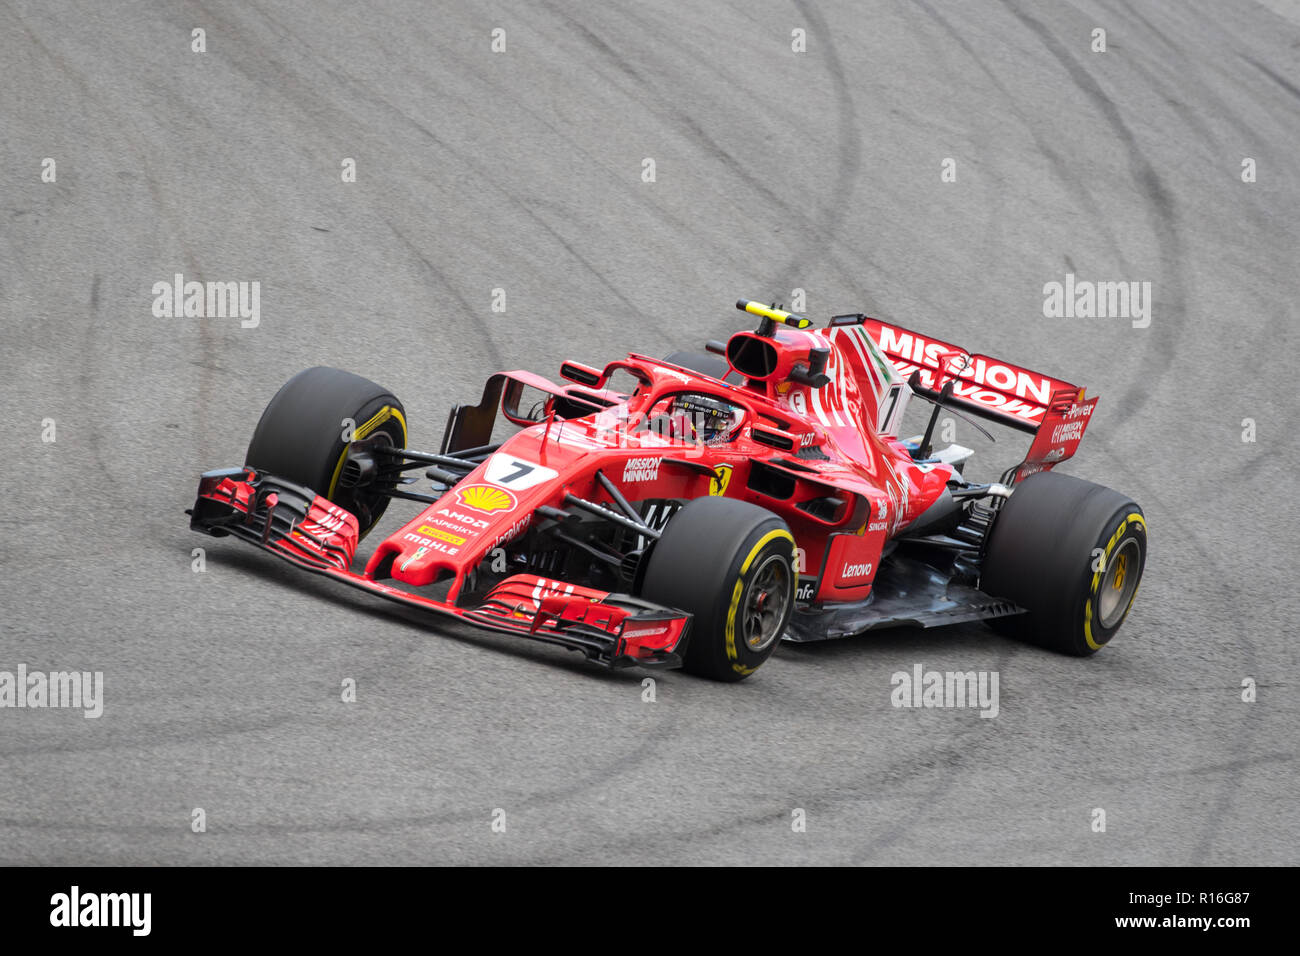 Circuit Interlagos : Sao paulo sao paulo brazil. 9th nov 2018. kimi raikkonen of